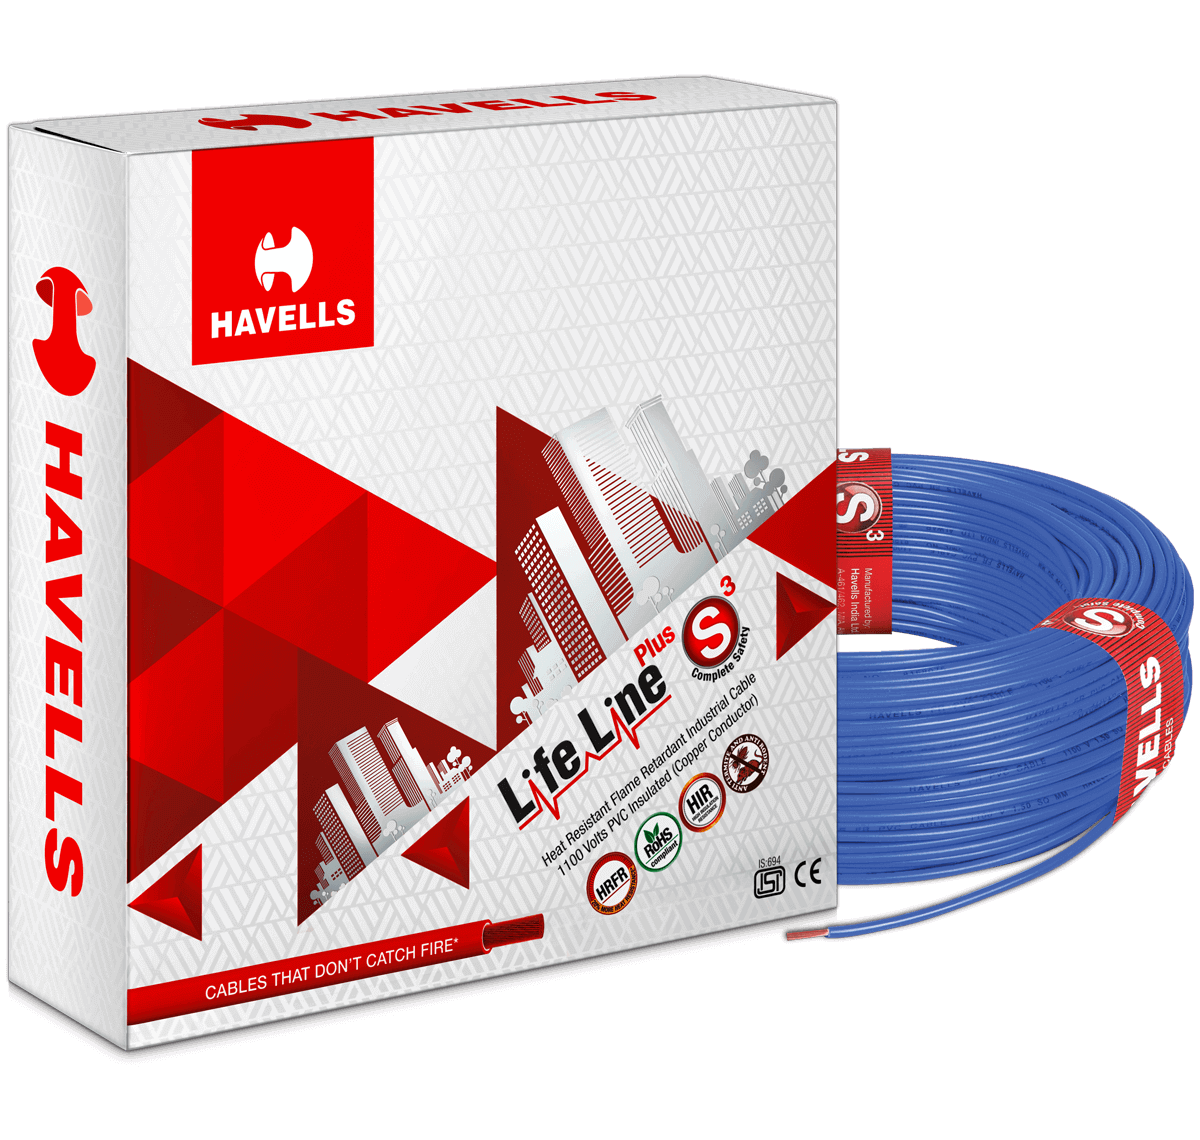 Awesome Types Of Wires For Every Household Need Havells India Blog Wiring 101 Capemaxxcnl